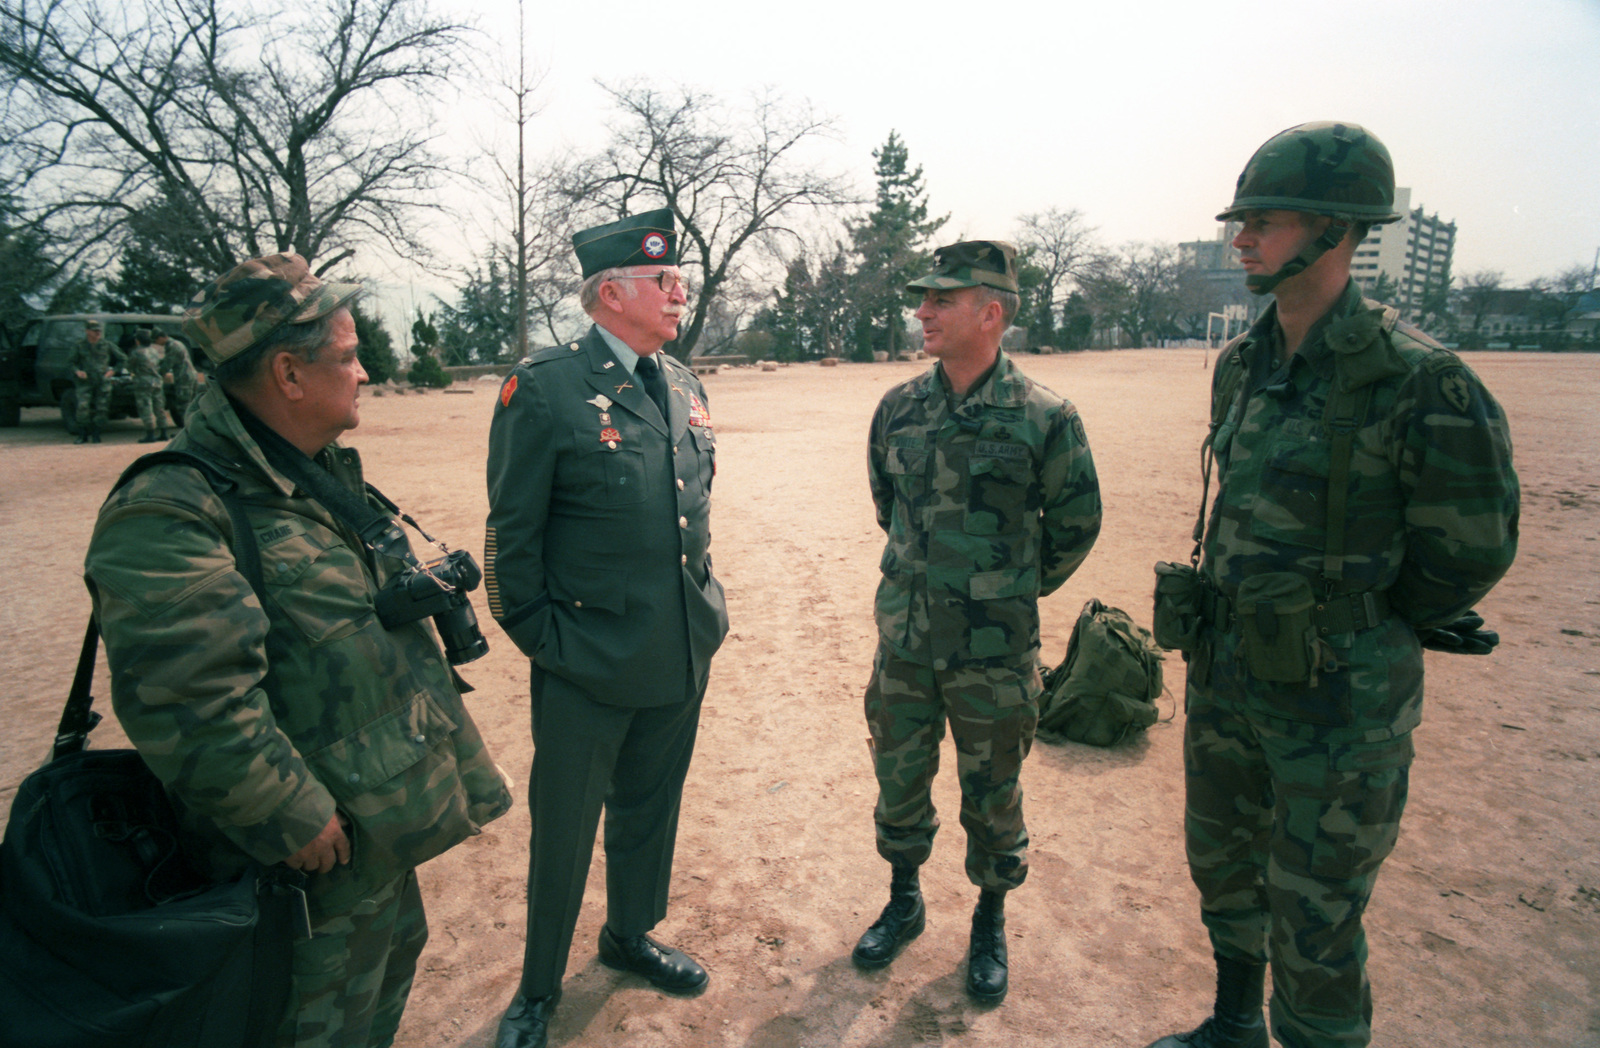 Retired Army Colonel (COL) Lewis Millett, a Korean War Medal of Honor recipient, left center, speaks with Colonel (COL) Jerry A. White, Commander, 1ST Brigade, 25th Infantry Division, and Lieuteant Colonel (LTC) George Close, Commander, 1ST Battalion, 5th  Infantry, 25th Infantry Division, right, after a ceremony commemorating the defense of Mason during the Korean War.  The ceremony is being held during the joint U.S/South Korean Exercise TEAM SPIRIT`85